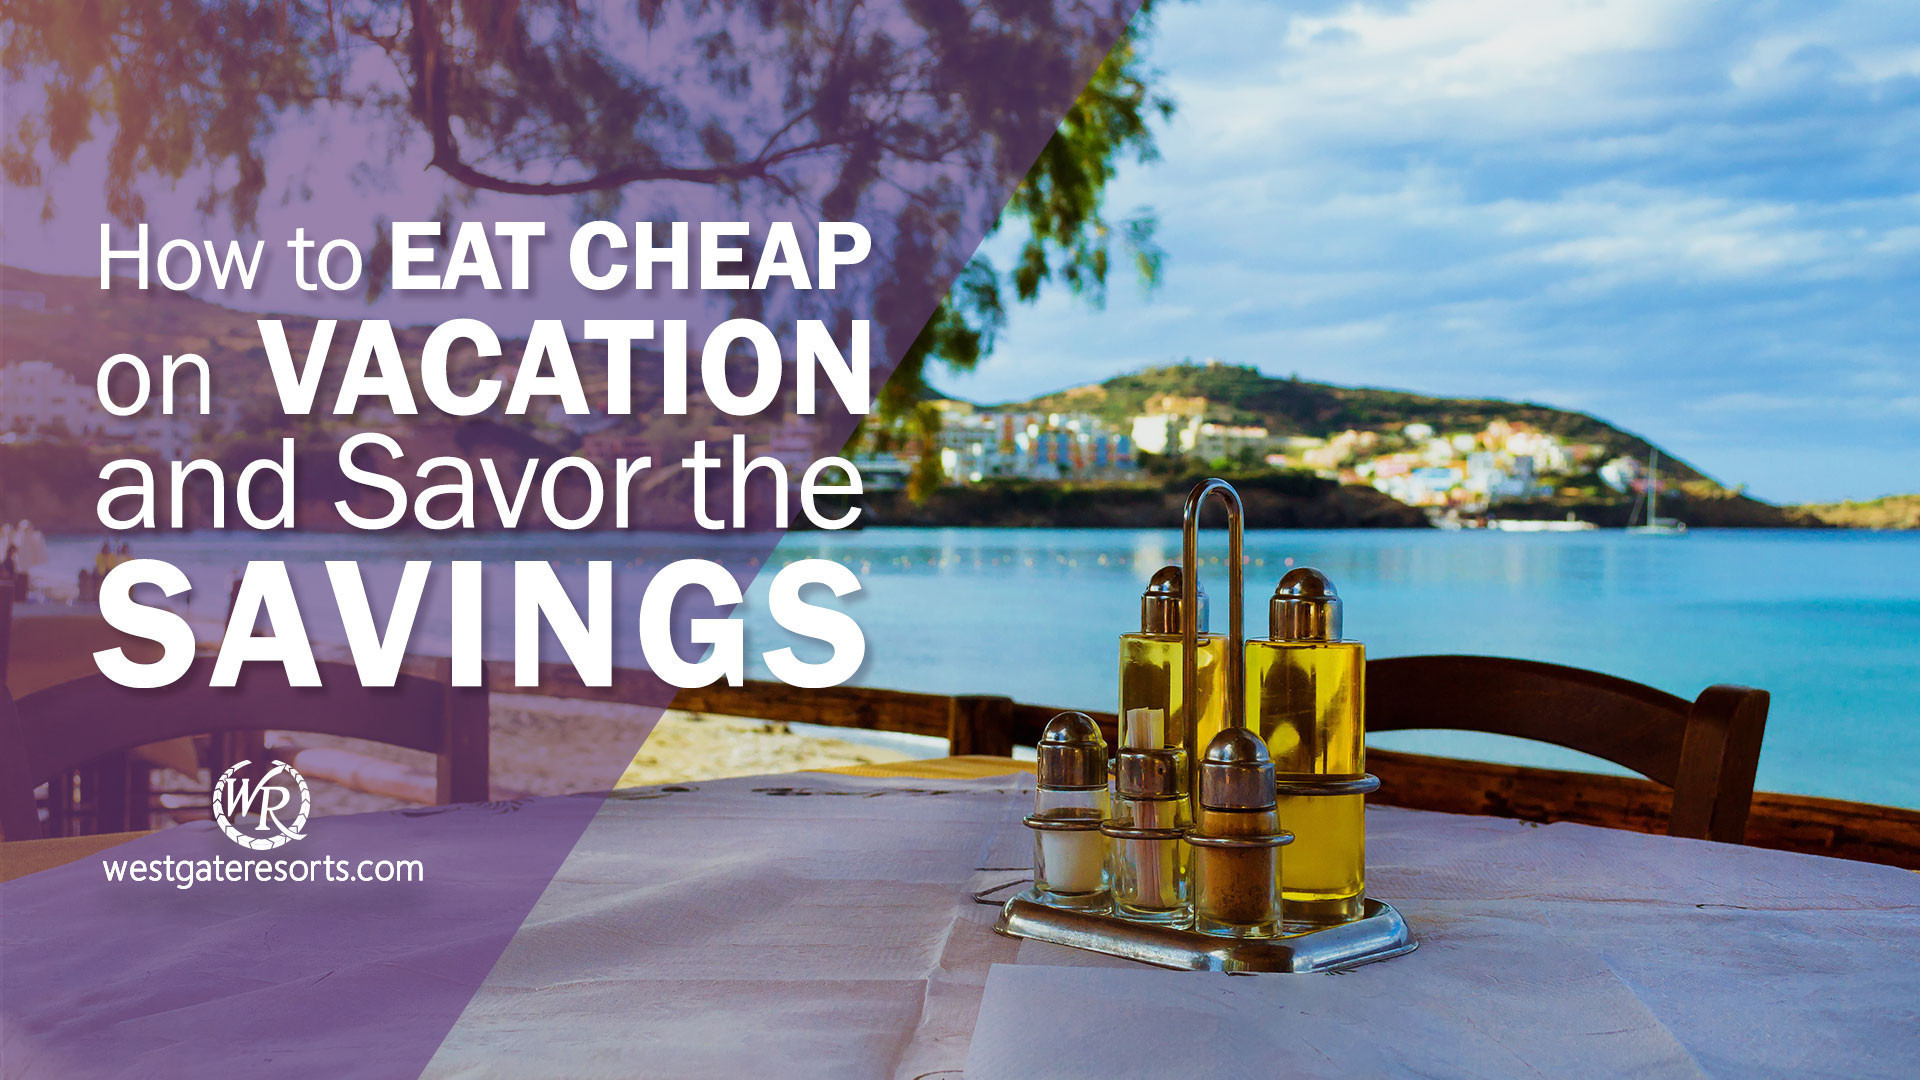 How to Eat Cheap on Vacation and Savor the Savings! | Culinary Travel Tips | Westgate Resorts